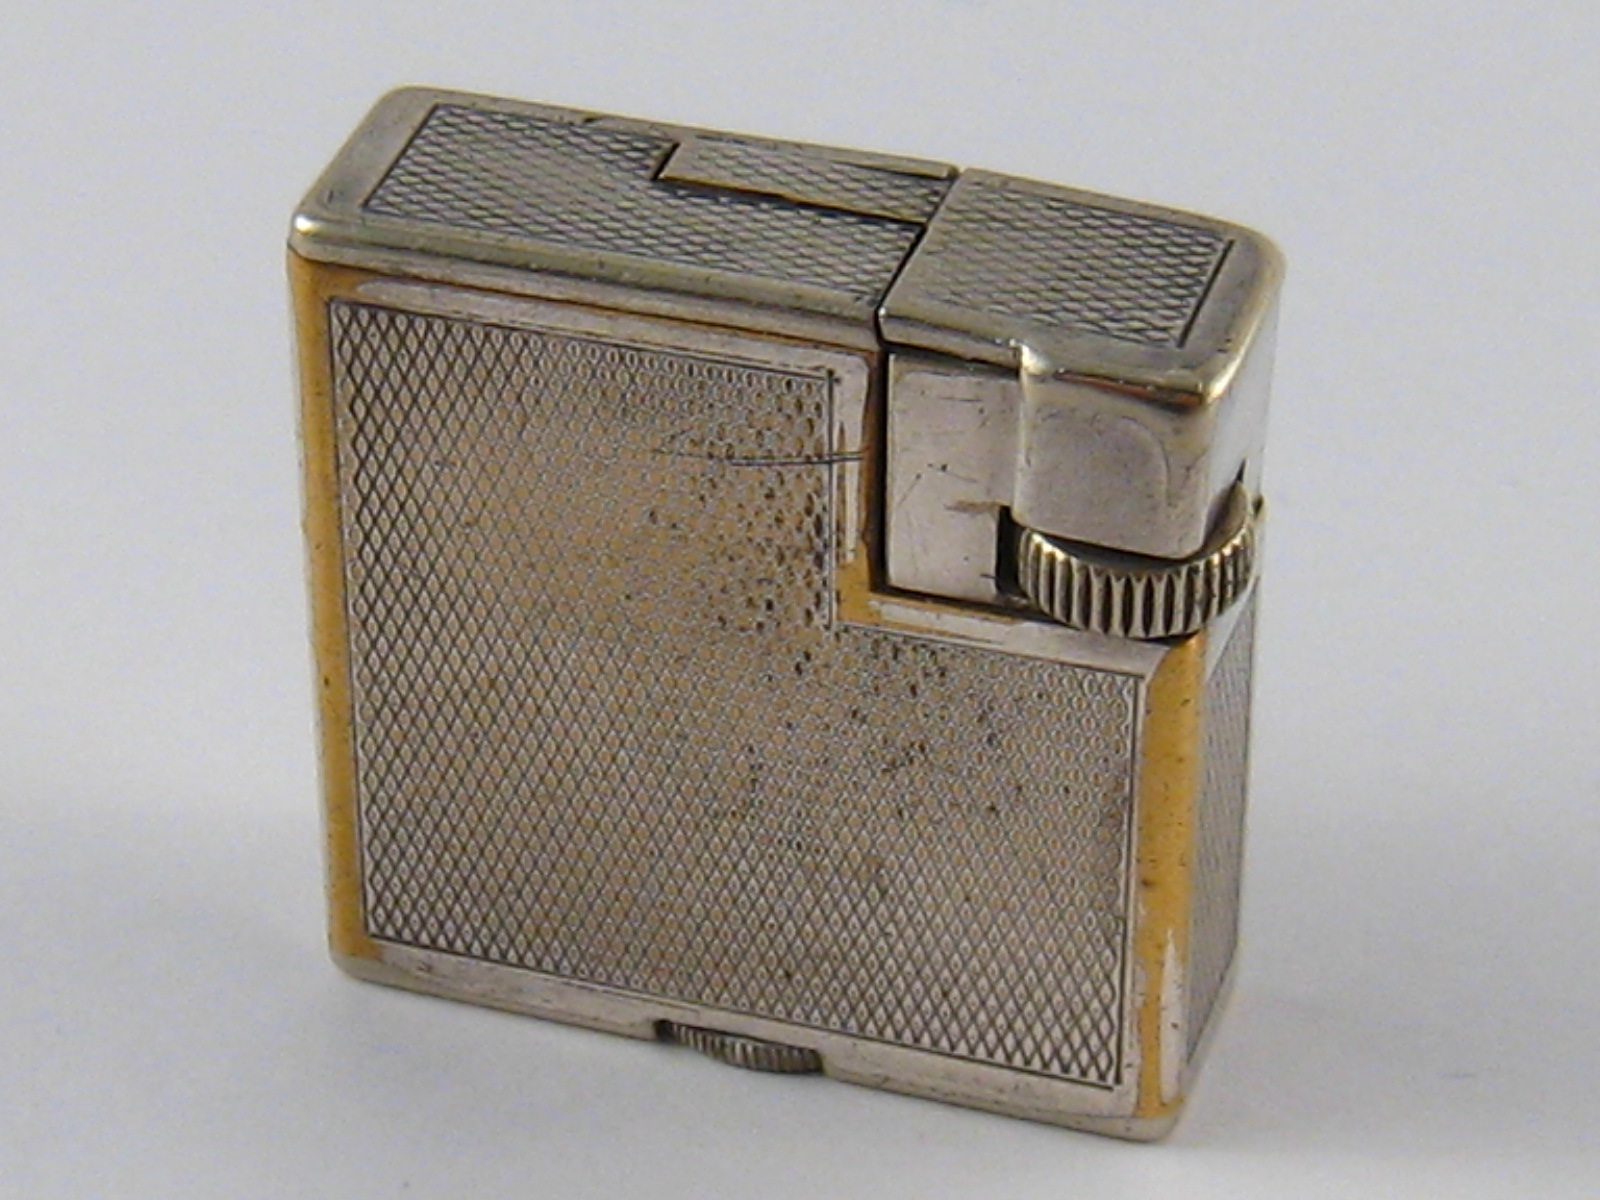 Lot 411 - A silver plate Dunhill London cigarette lighter, made in Switzerland, approx 3.5 x 3.5cm.